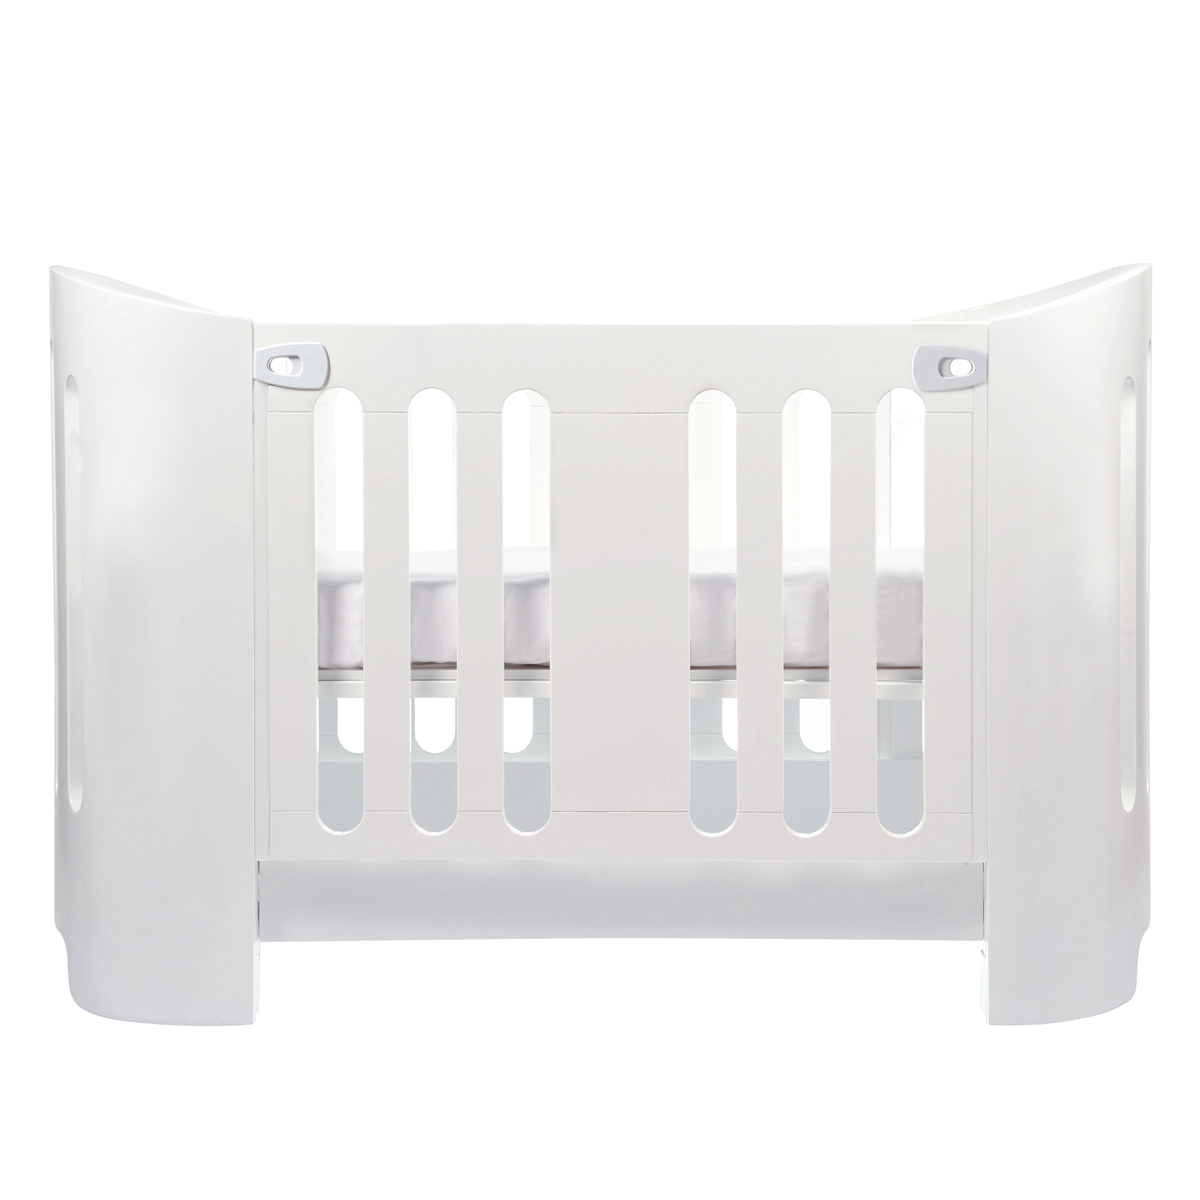 bloom luxo crib bloom luxo cot bed diddle tinkers  bloom luxo  - bloom luxo crib thetot bloomcribluxowhite bloomcribluxowhitebloomcribluxowhitebloomcribluxowhite bloomcribluxowhite